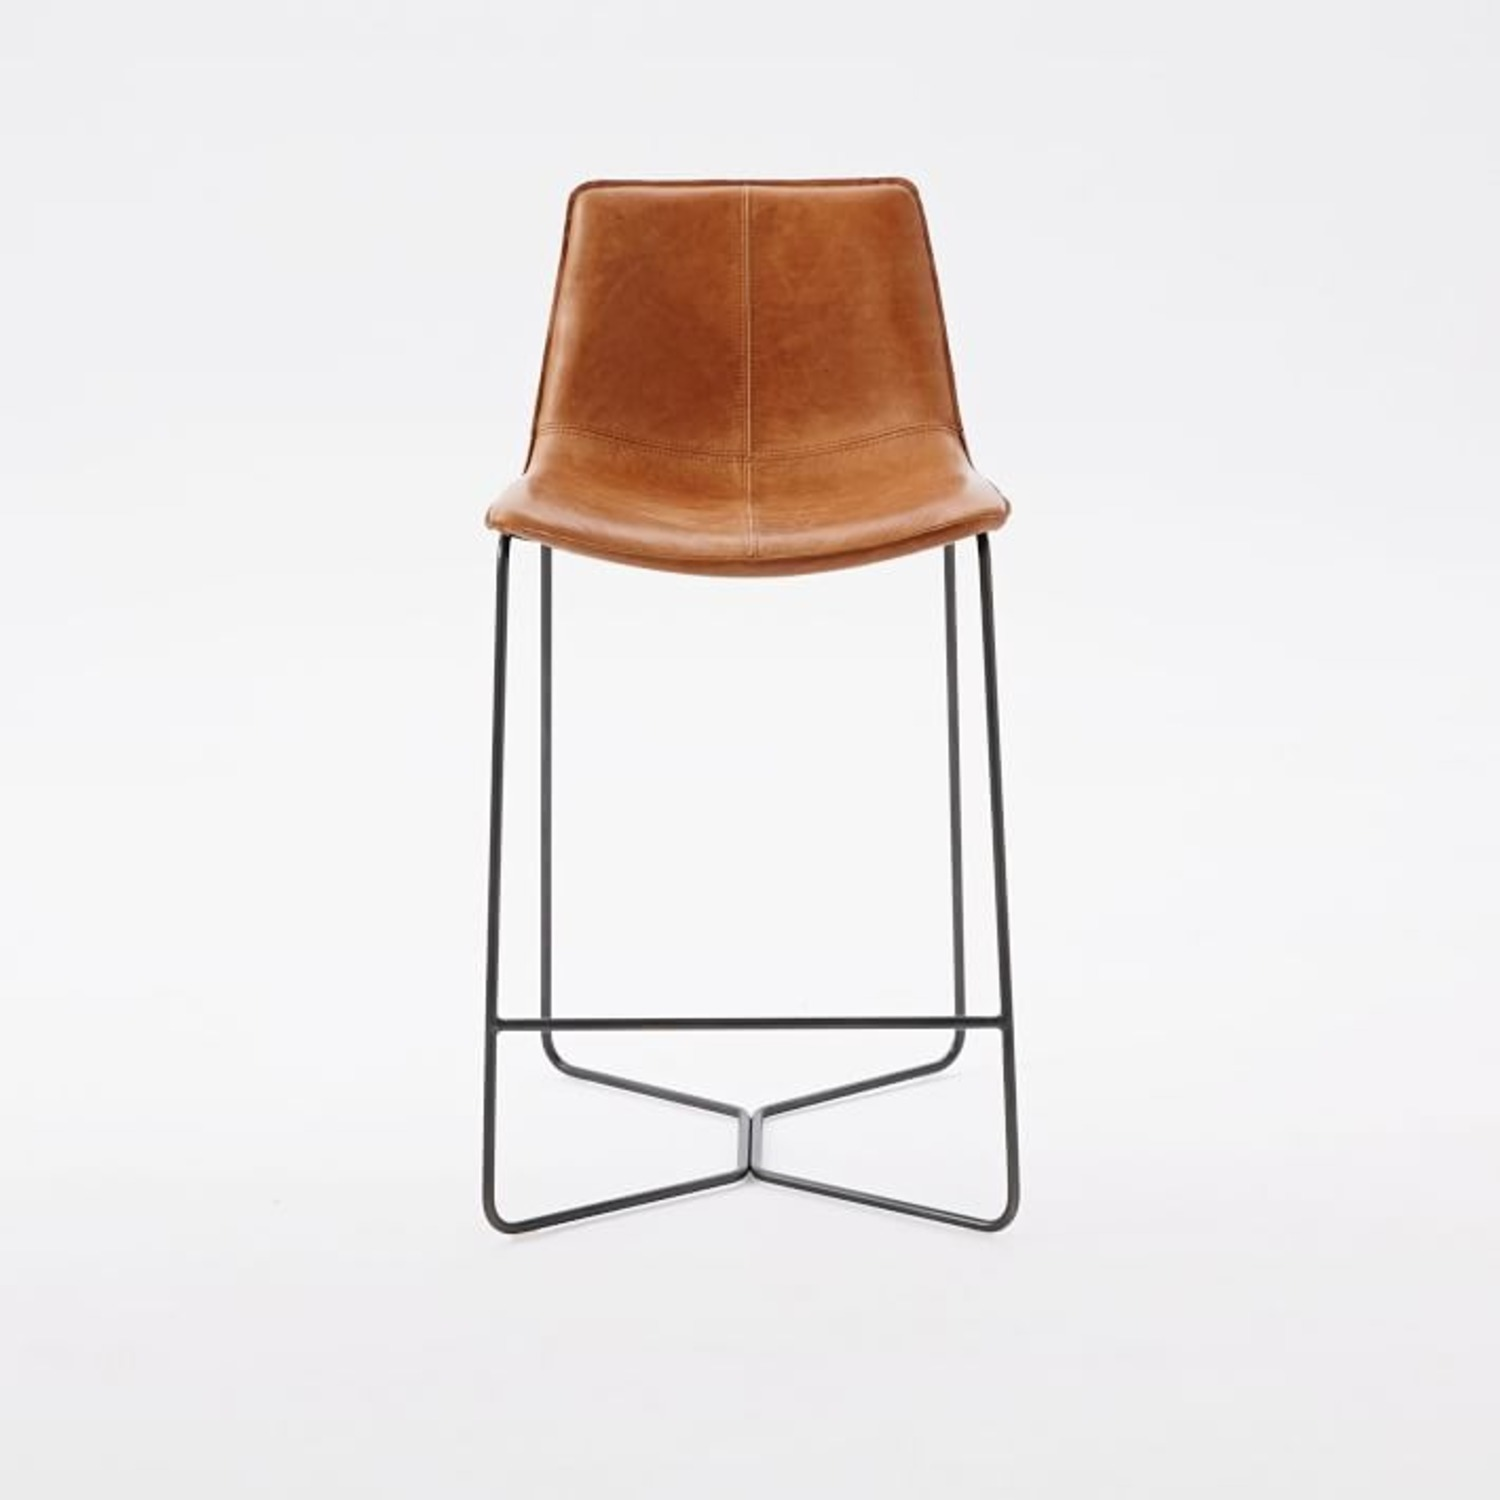 West Elm Leather Slope Counter Stool - image-2